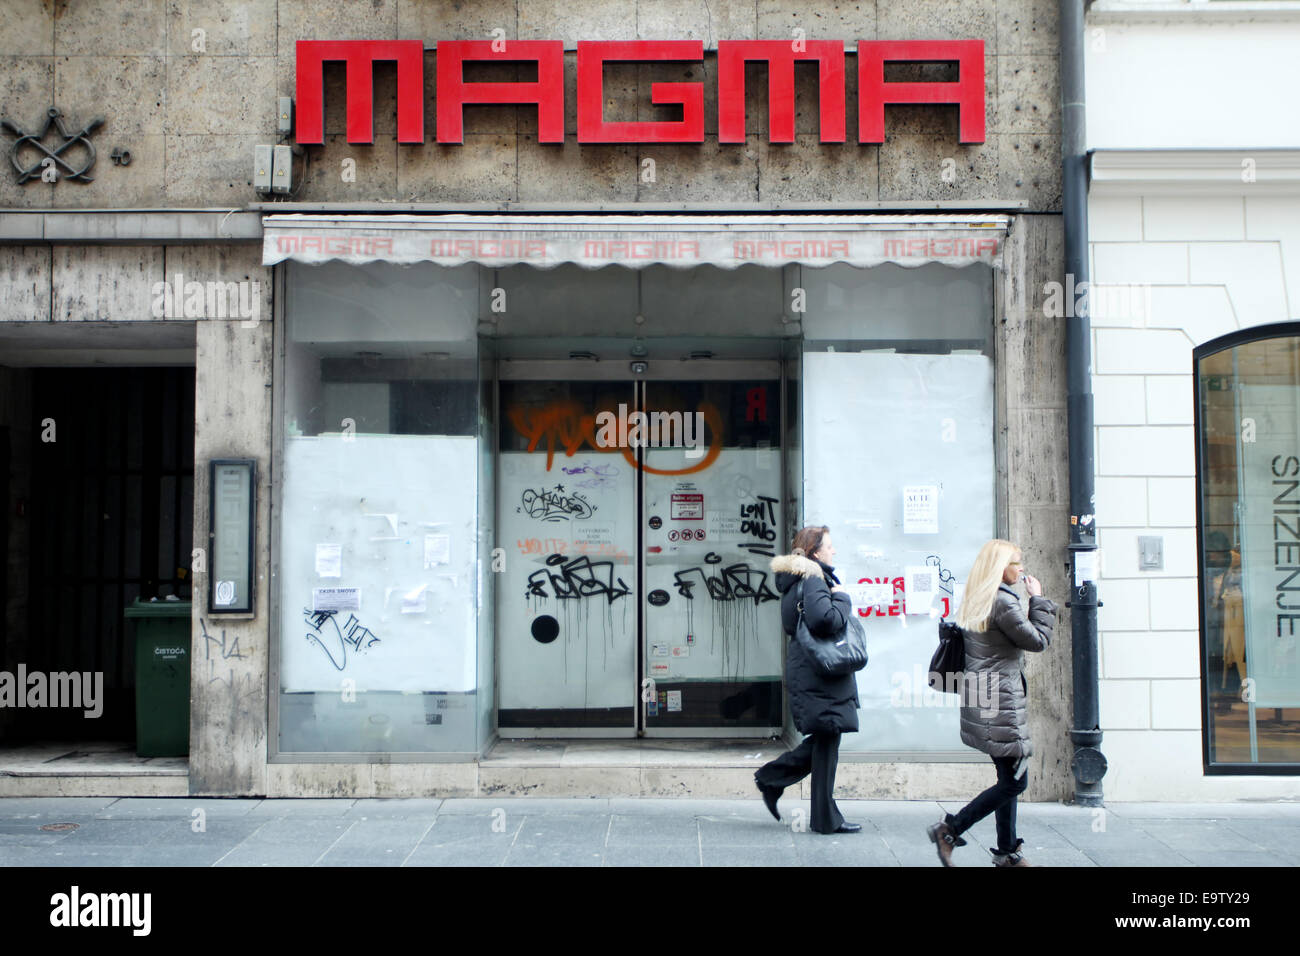 ZAGREB, CROATIA-FEBRUARY 24: People passing by the closed Magma store on February 24th, 2014 in street Ilica in - Stock Image